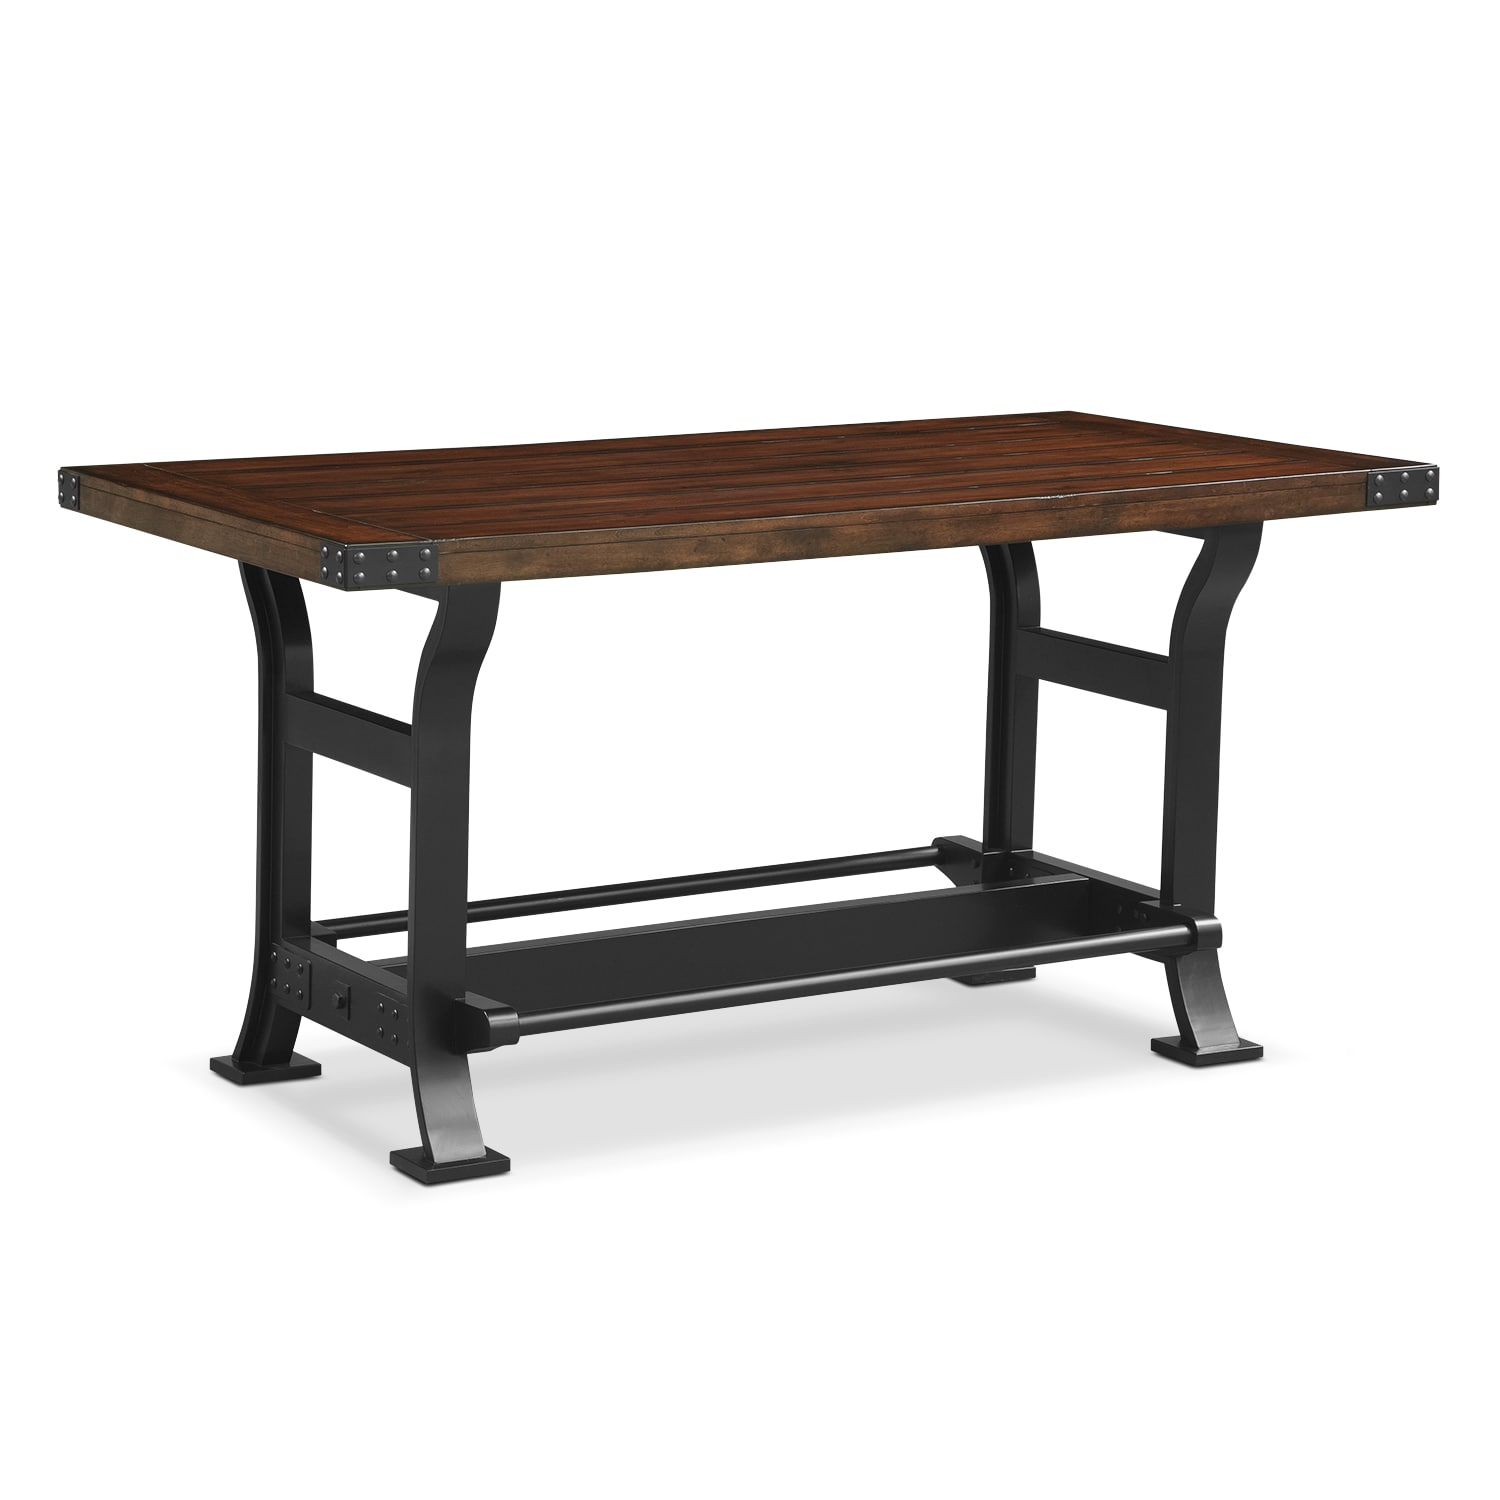 Newcastle Counter Height Dining Table Mahogany Value  : 433263 from www.valuecityfurniture.com size 1500 x 1500 jpeg 99kB